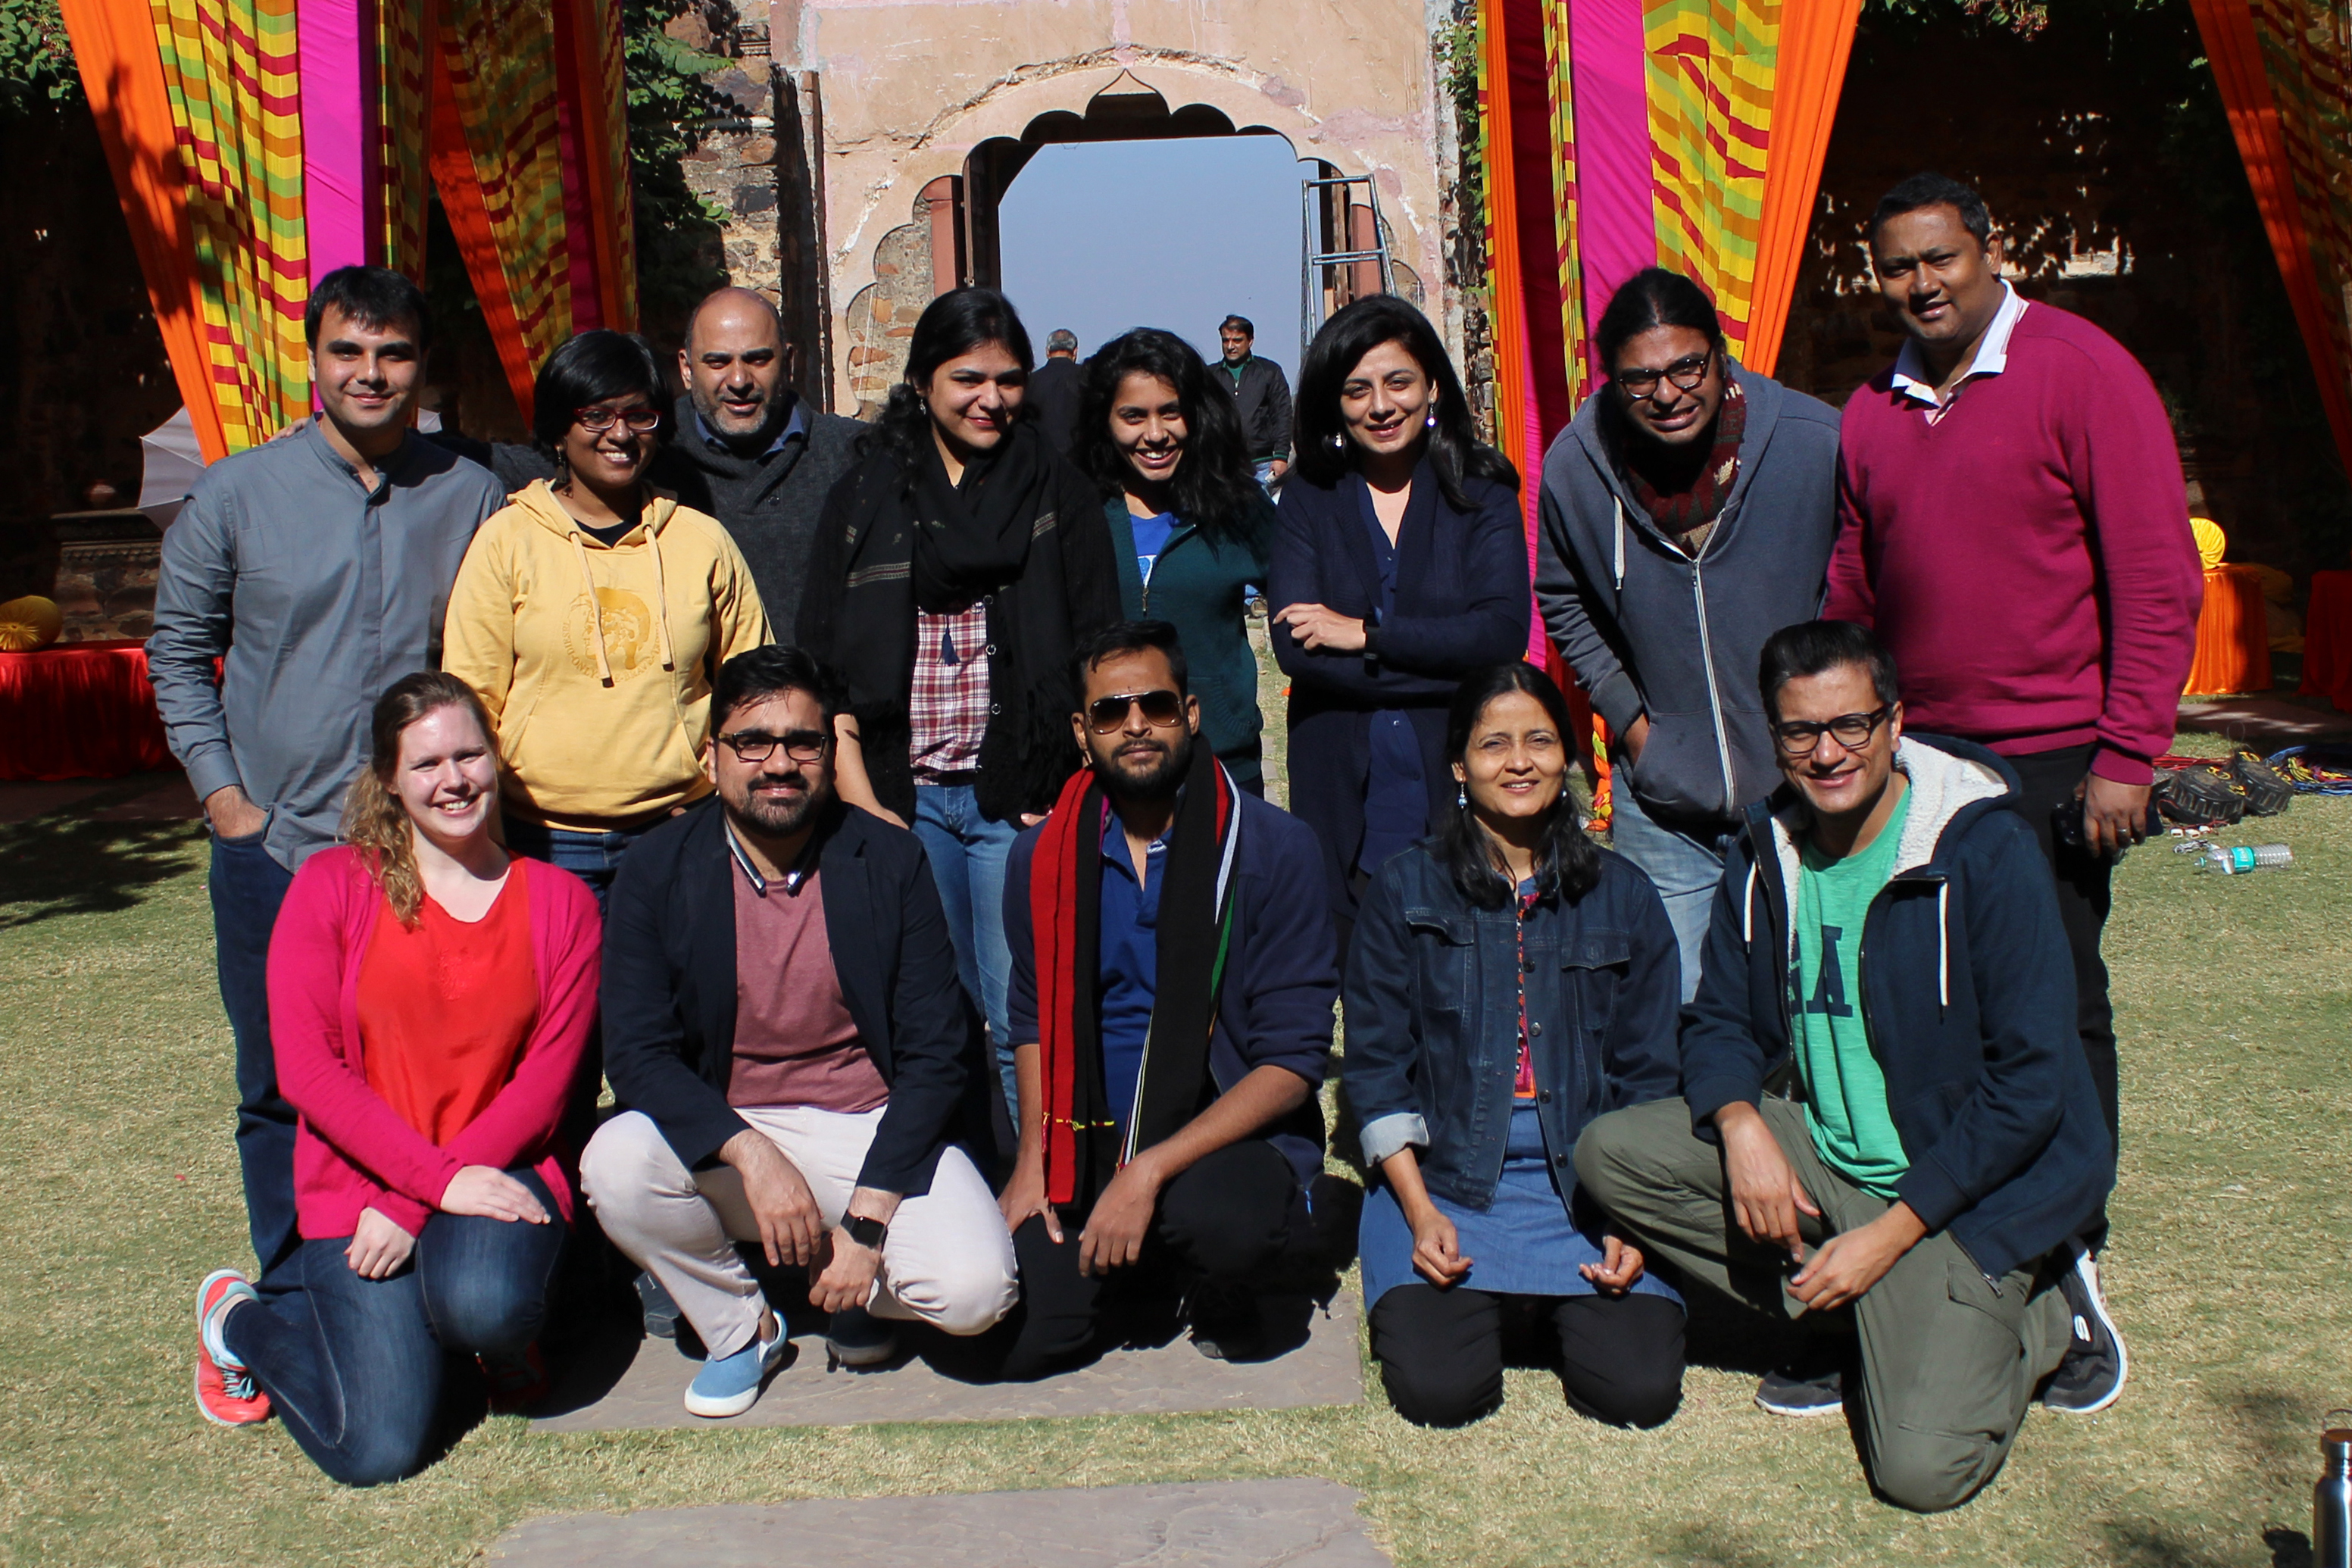 Current and former ICFJ Knight Fellows and associates from India